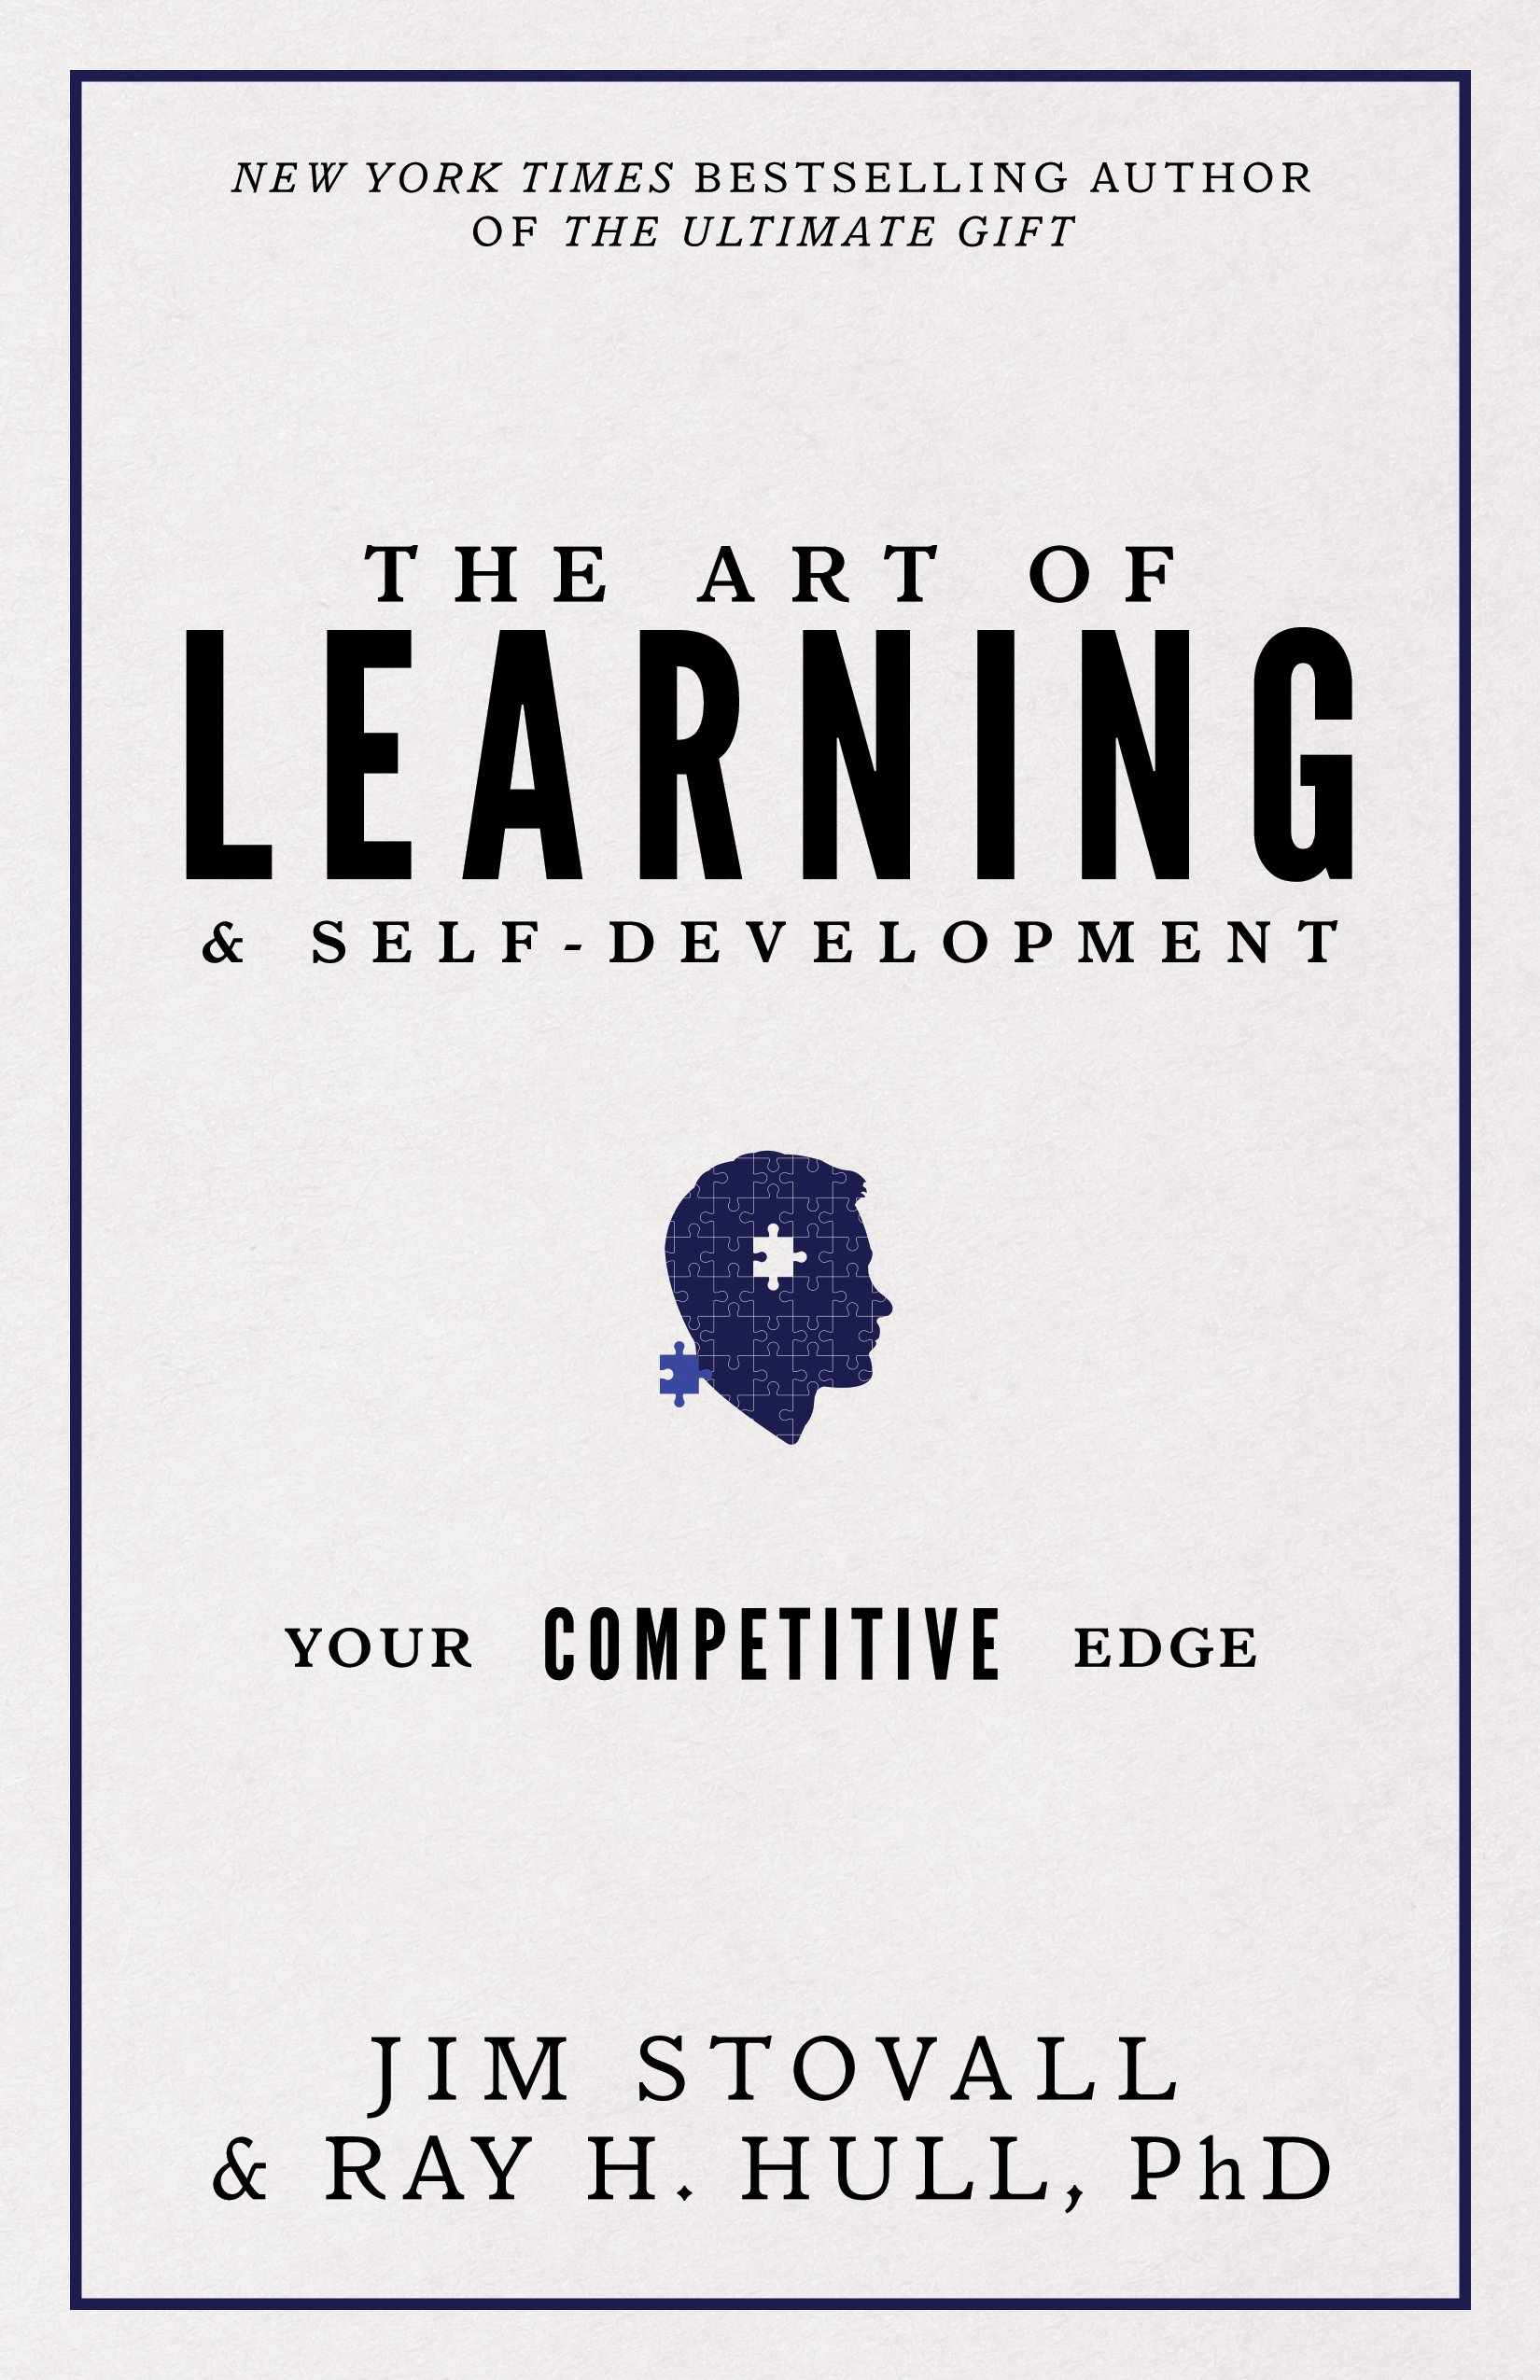 The_Art_of_Learning_and_Self-Development.jpg